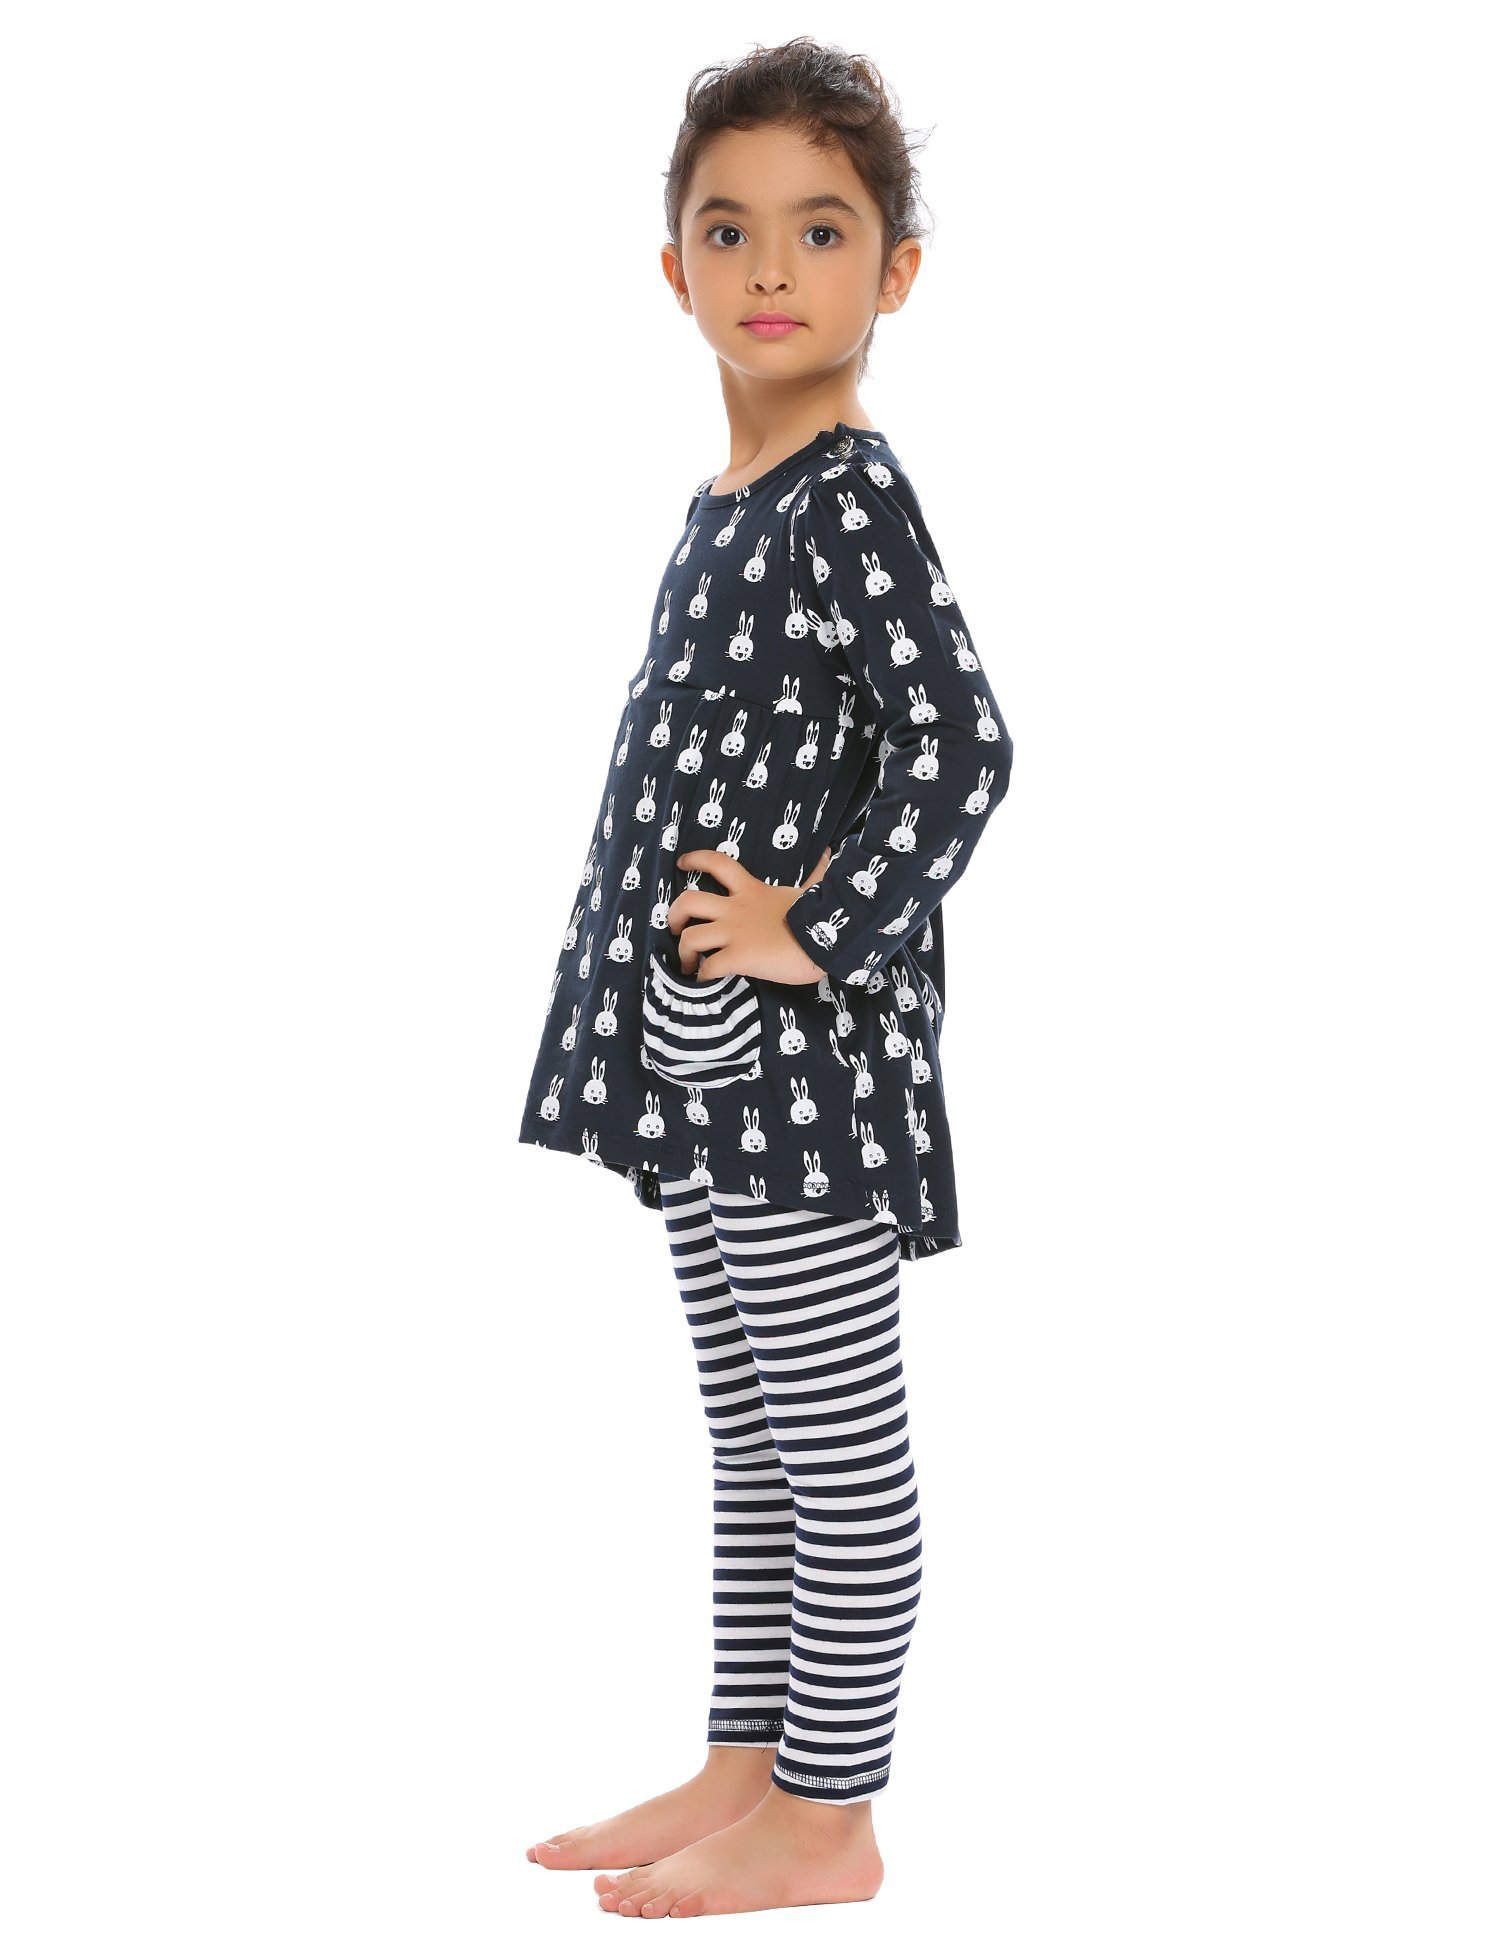 Arshiner Little Girls Long Sleeve Cute Rabbit Print with Pockets Cotton Outfit 12 pcs Pants Sets Top+Legging,Navy Blue,130(7-8years old) by Arshiner (Image #5)